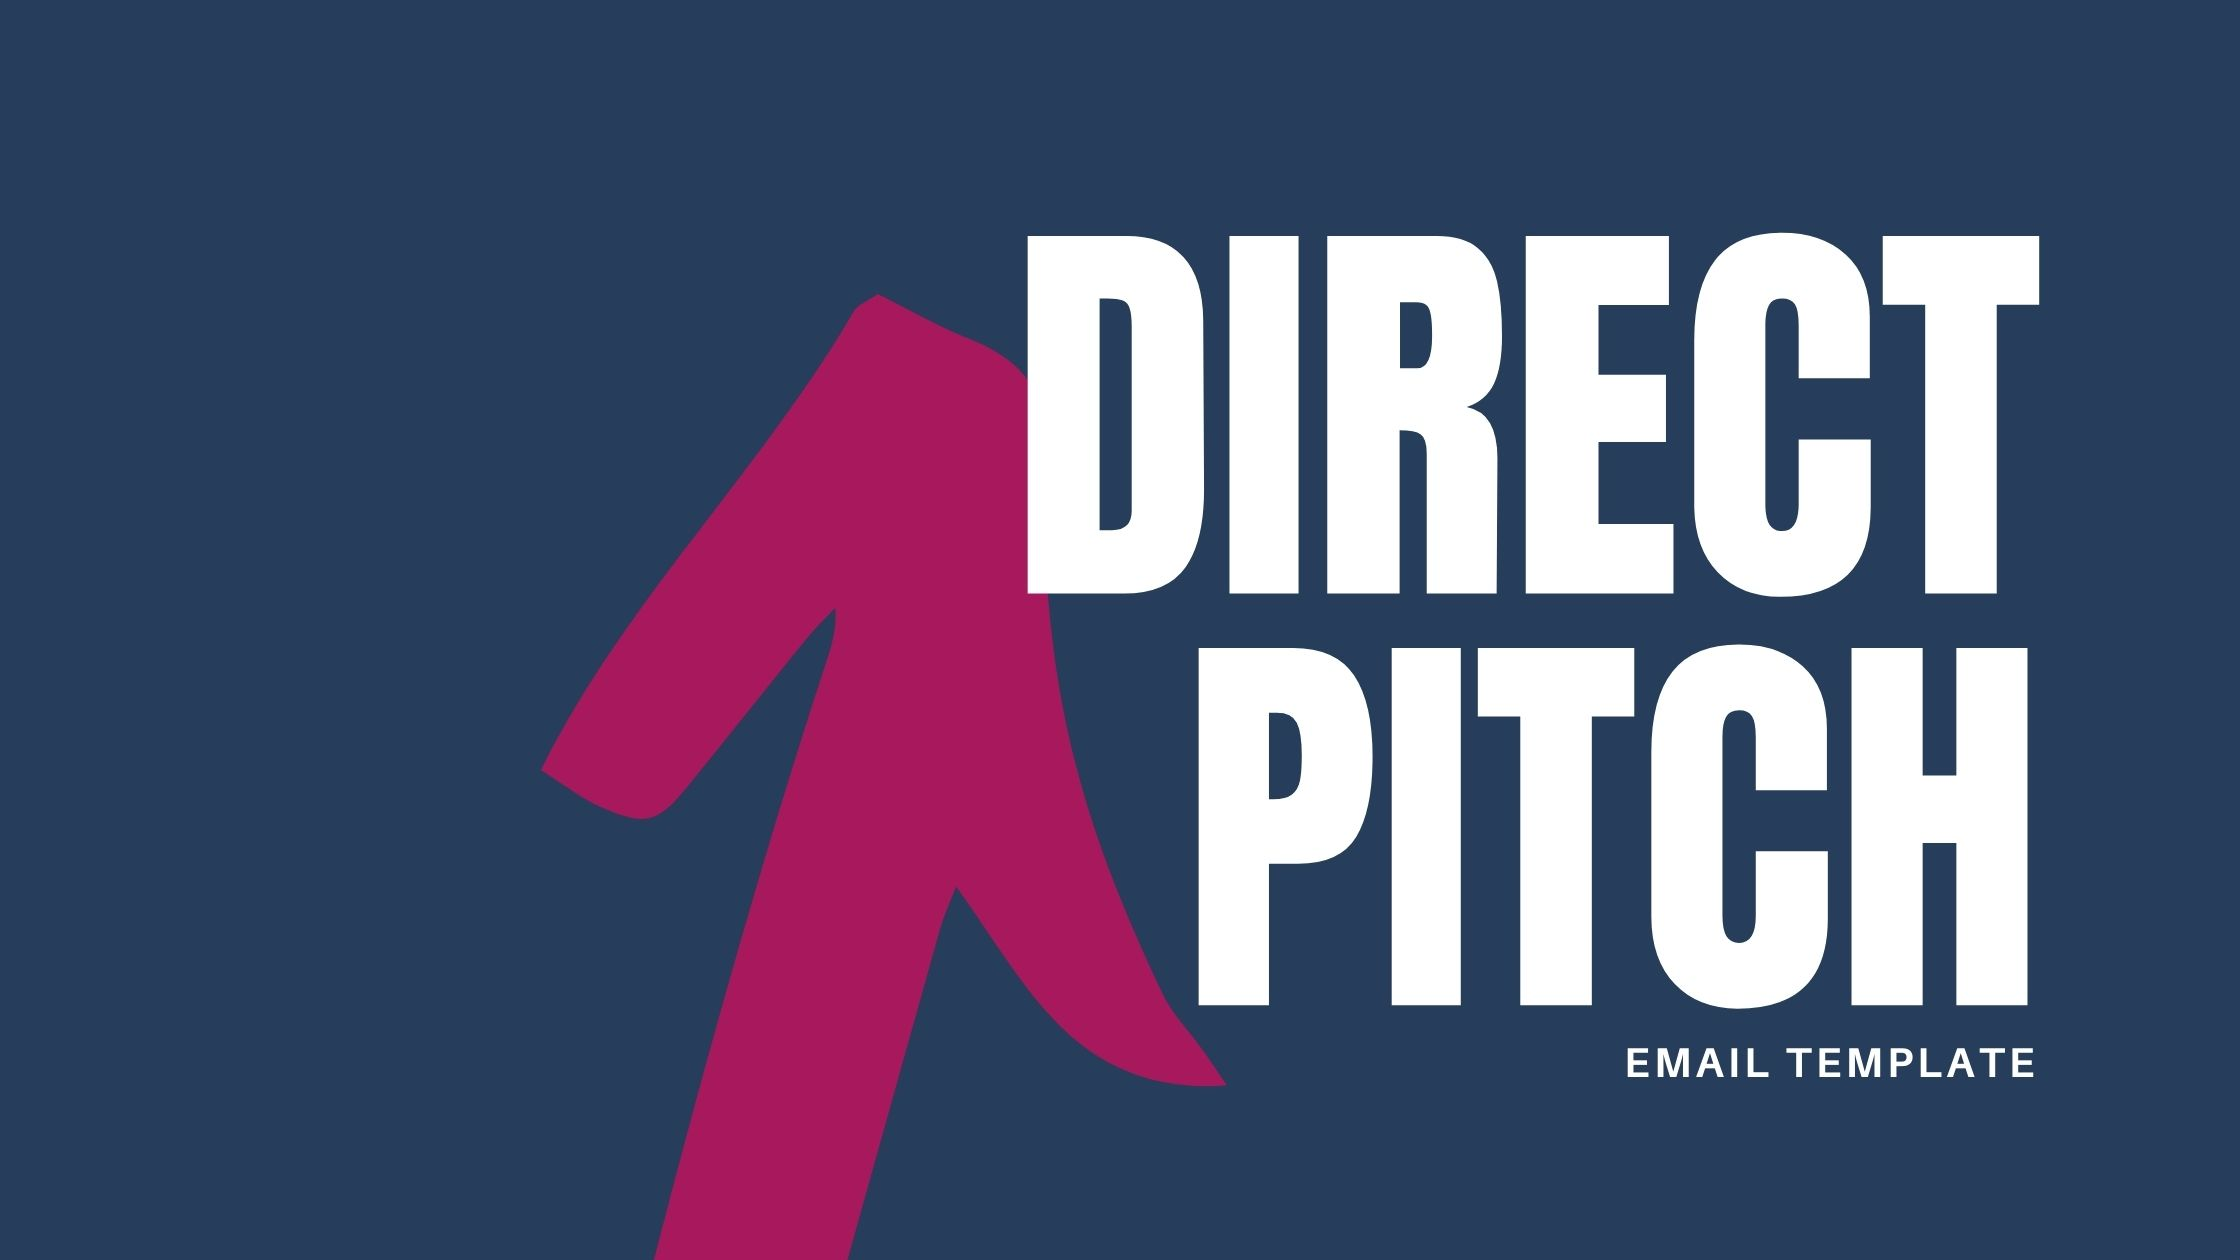 DIRECT PITCH EMAIL TEMPLATE